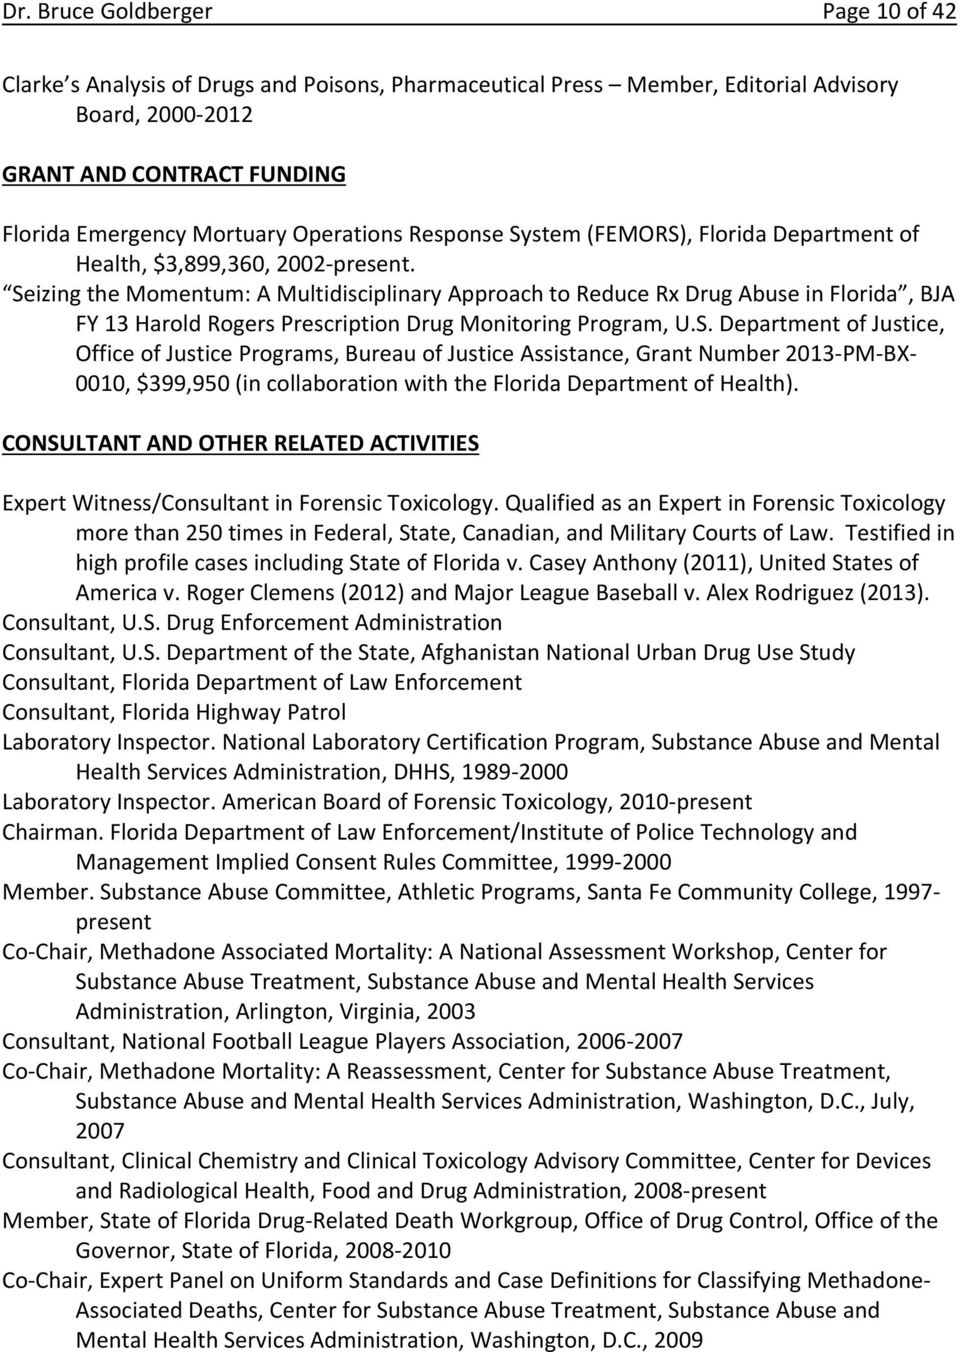 Seizing the Momentum: A Multidisciplinary Approach to Reduce Rx Drug Abuse in Florida, BJA FY 13 Harold Rogers Prescription Drug Monitoring Program, U.S. Department of Justice, Office of Justice Programs, Bureau of Justice Assistance, Grant Number 2013 PM BX 0010, $399,950 (in collaboration with the Florida Department of Health).